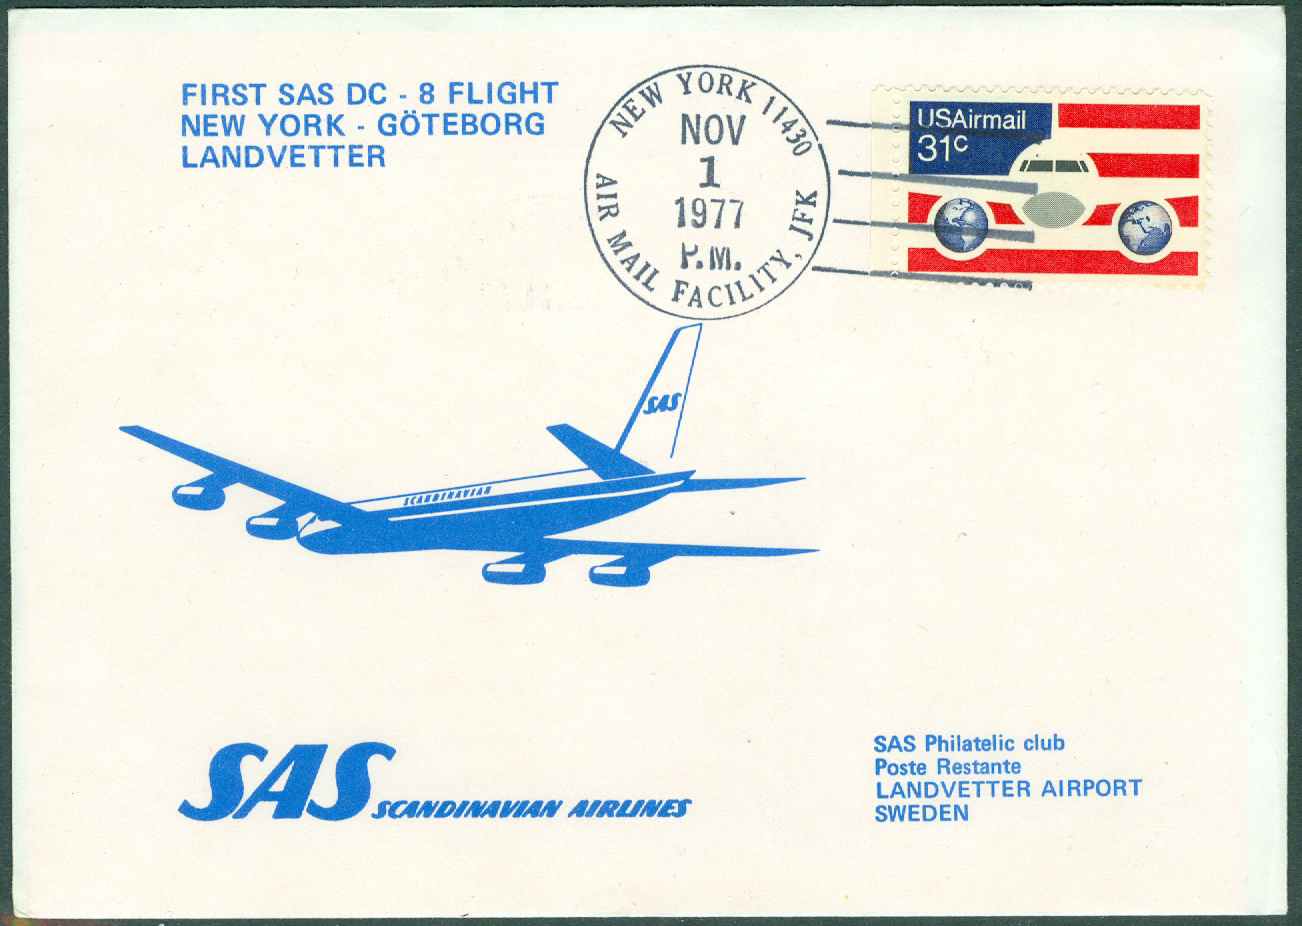 USA - 1977-11-01 - First SAS DC-8 Flight New York - Göteborg Landvetter